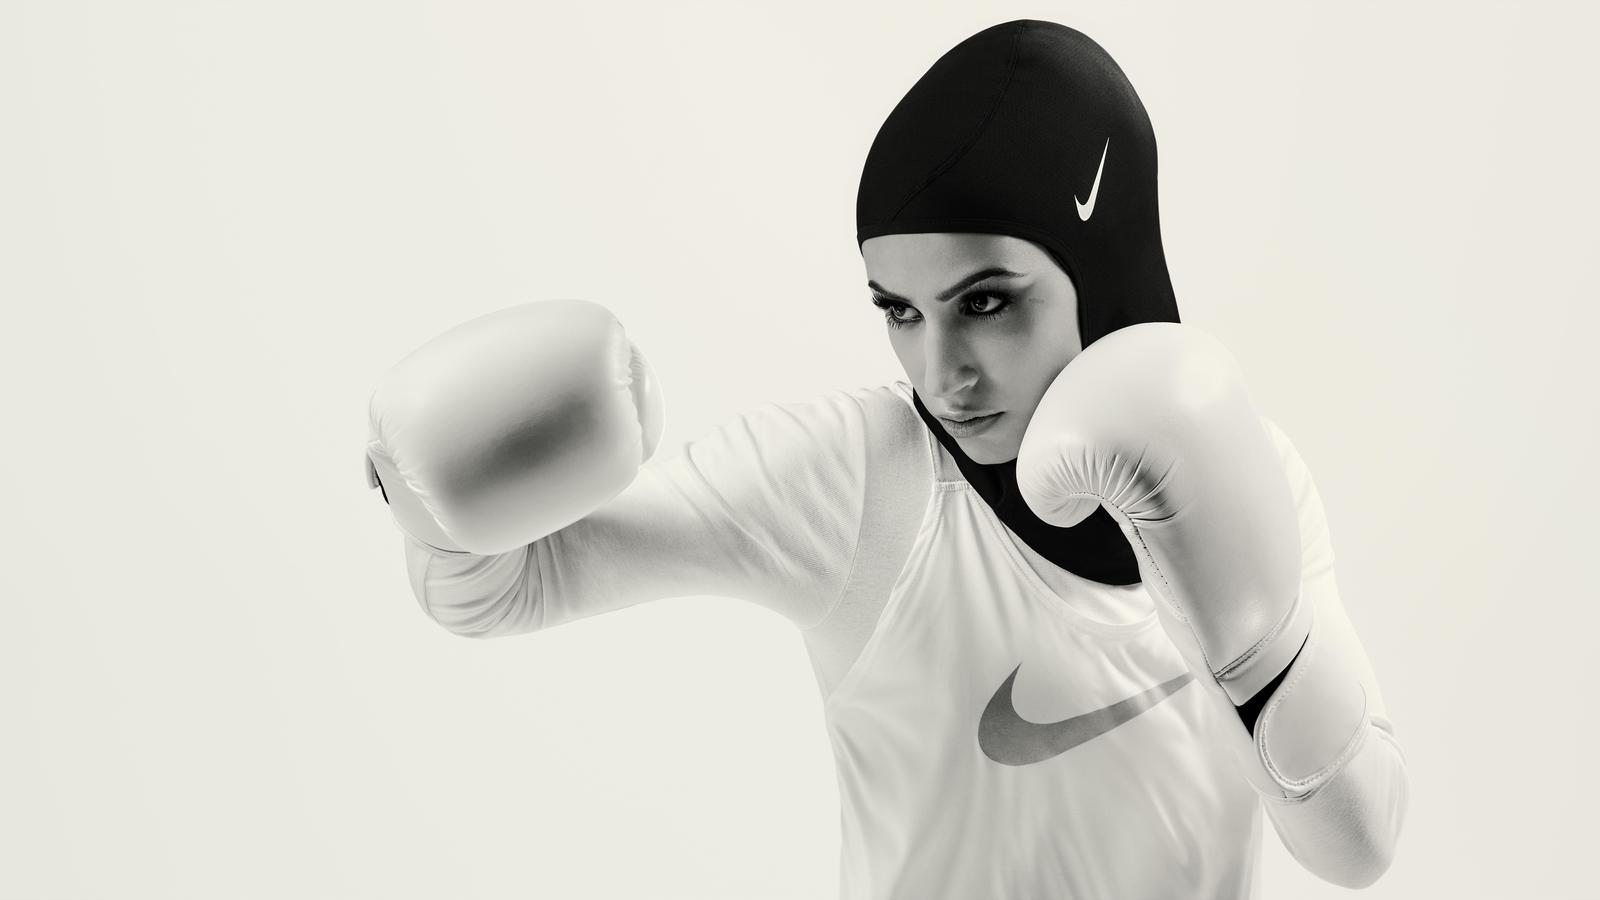 The designers gave that initial prototype to a variety of athletes, including weightlifter Amna Al Haddad and figure skater Zahra Lari, both from the United Arab Emirates, to put the garment to the test in their respective sports. Everyday athletes from around the Middle East, including runners like Manal Rostom, a Nike Run Club Coach in Dubai, and Zeina Nassar, a German boxer, also assessed the hijabs. Nike gathered both the athletes' performance feedback and their reactions to the garment's appearance.